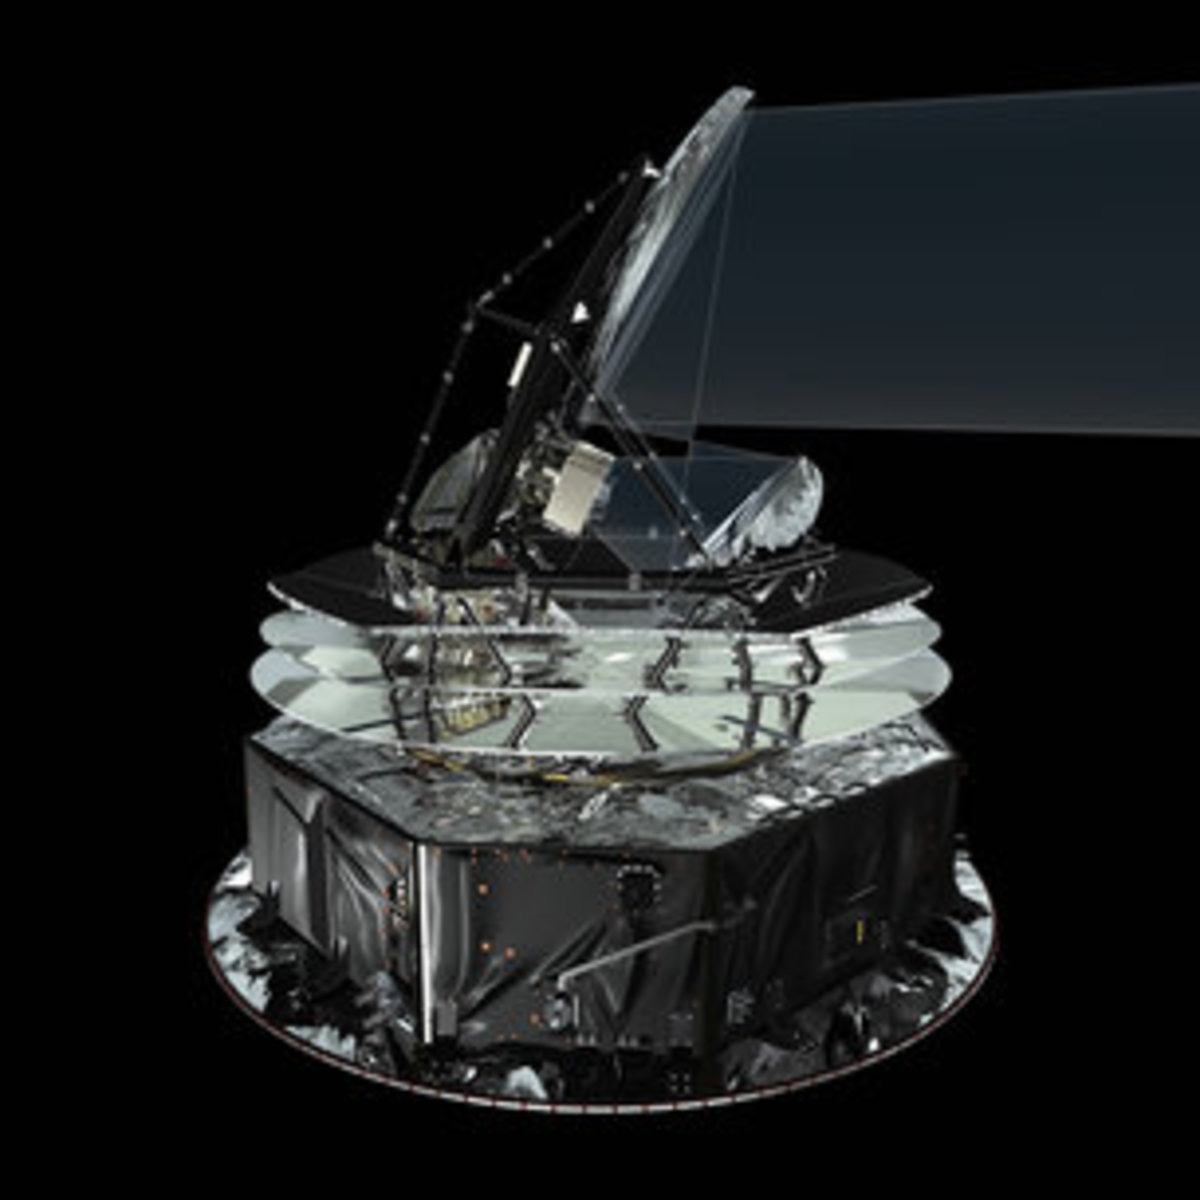 Planck satellite and telescope-It has been designed to be robust enough to withstand the 'shake-and-bake' stresses of launch, and the temperature difference between launch, when it is at an ambient temperature of about 300 K, and operation, at about